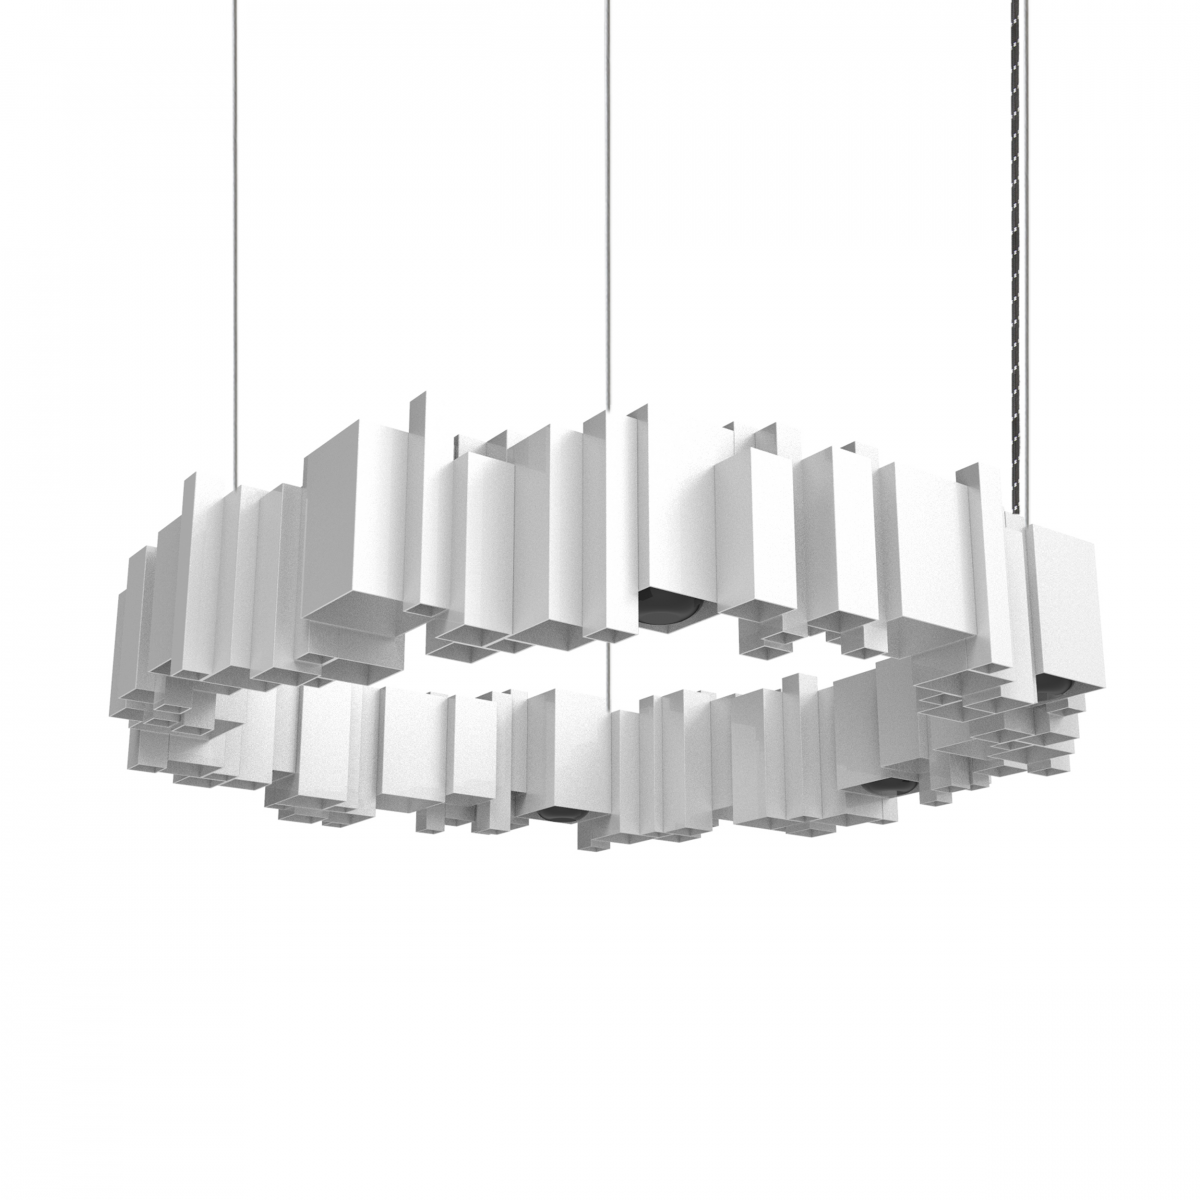 JSPR Cityscapes Urban Lamp OFF Silver Zilver